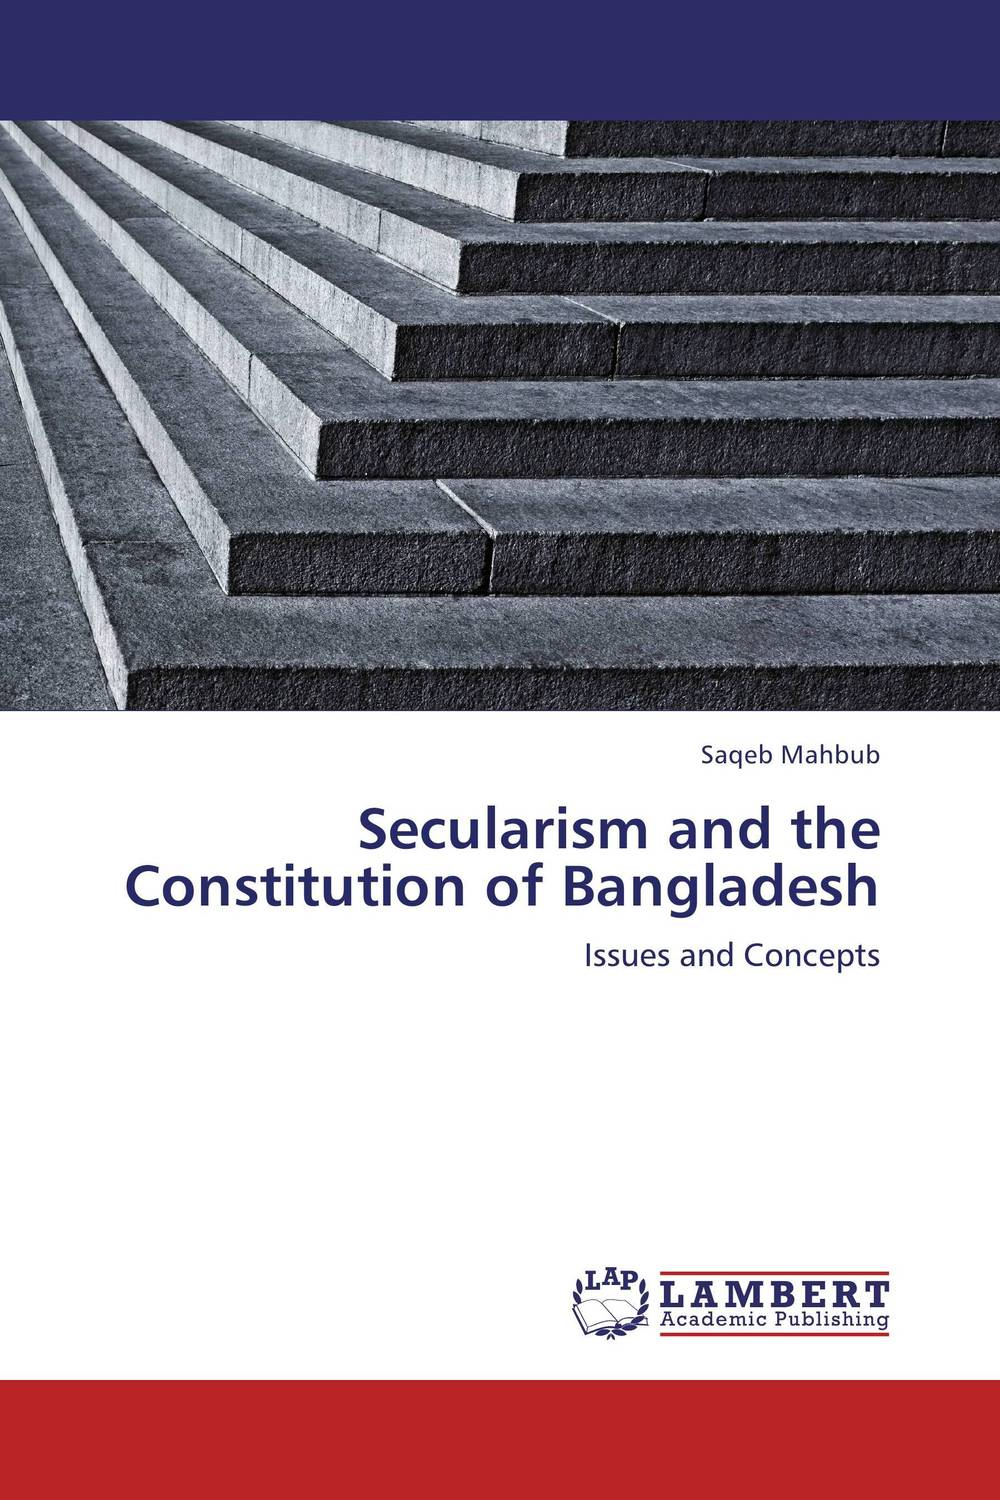 Secularism and the Constitution of Bangladesh secularism catholicism and the future of public life